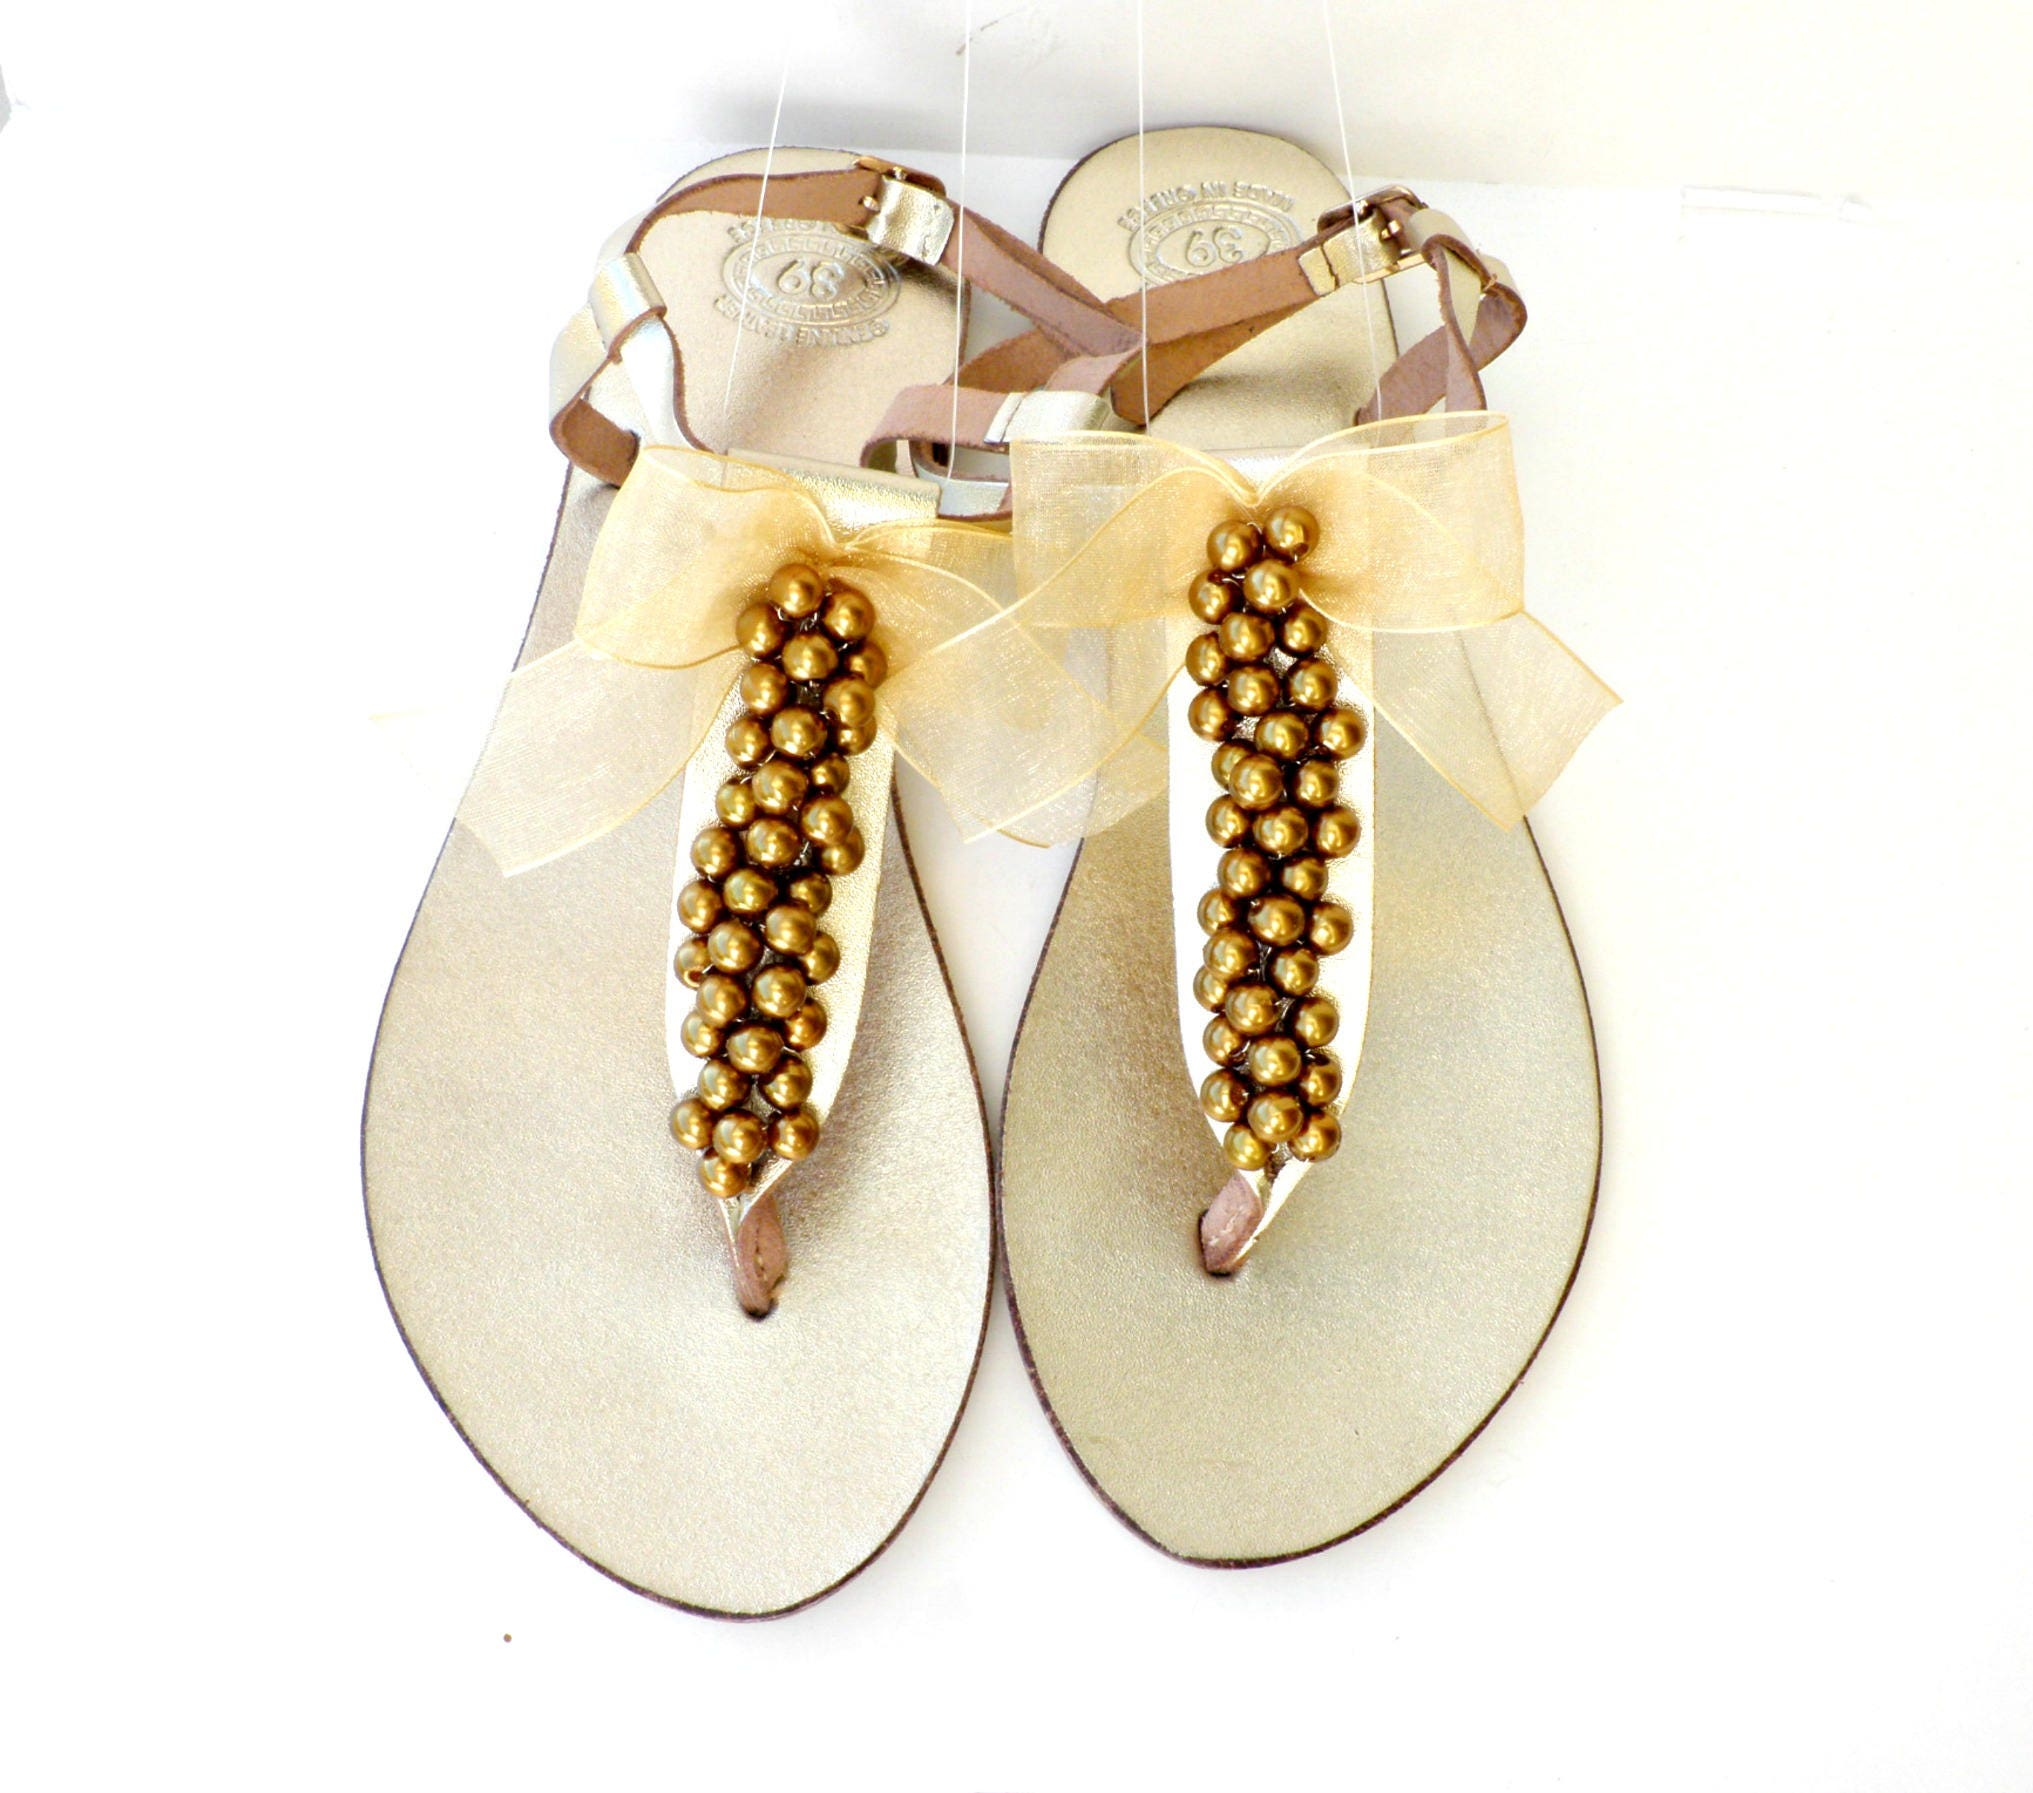 Gold sandals wedding leather sandals metalic gold sandals gold gold sandals wedding leather sandals metalic gold sandals gold pearls bridal sandals beach wedding bridal party shoes summer flats junglespirit Image collections